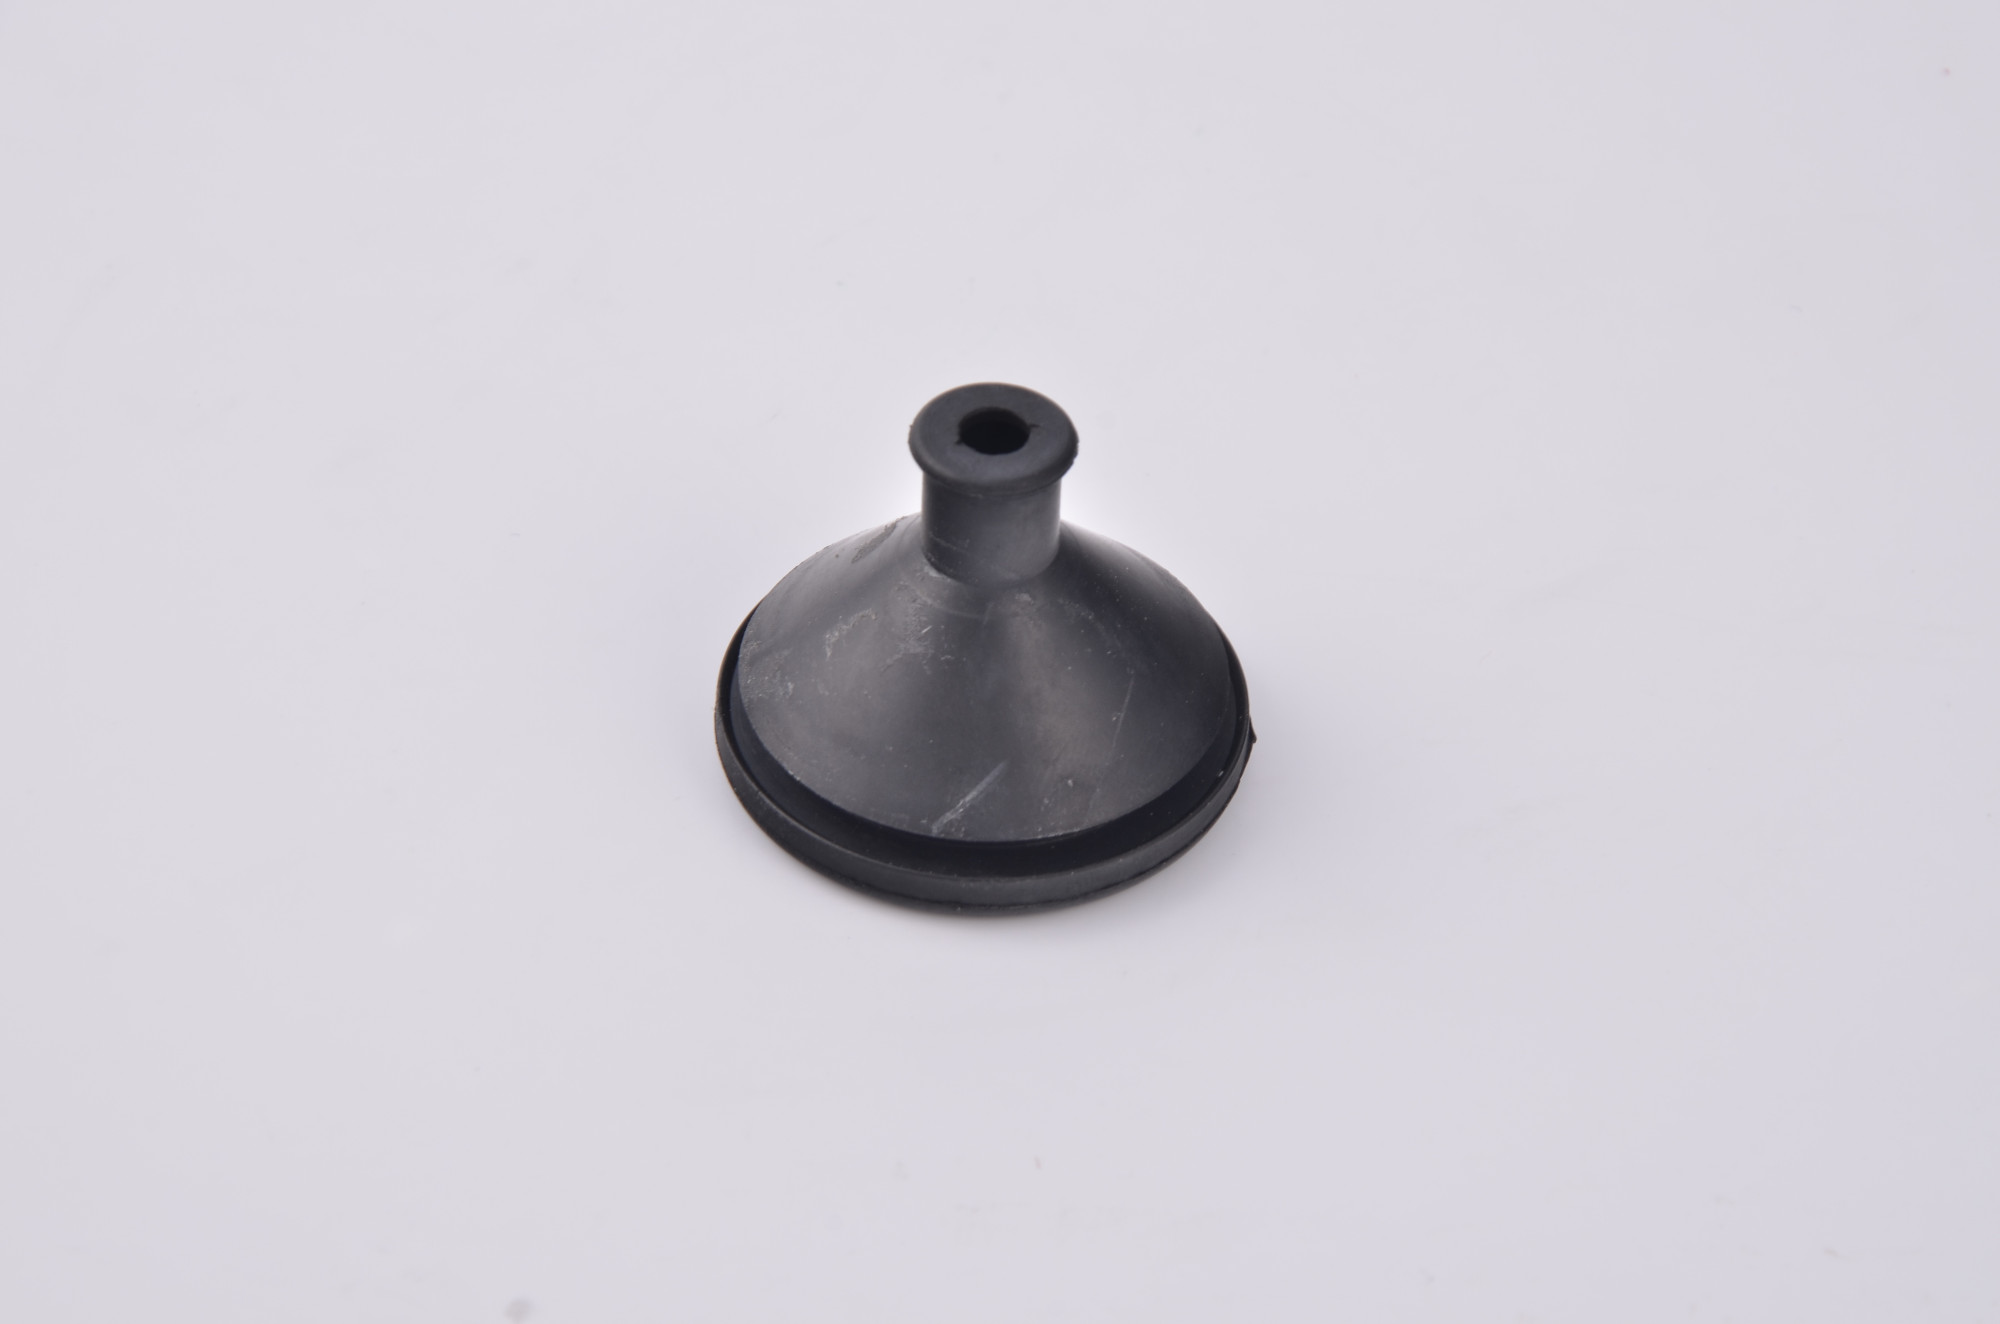 Elbow shape rubber parts